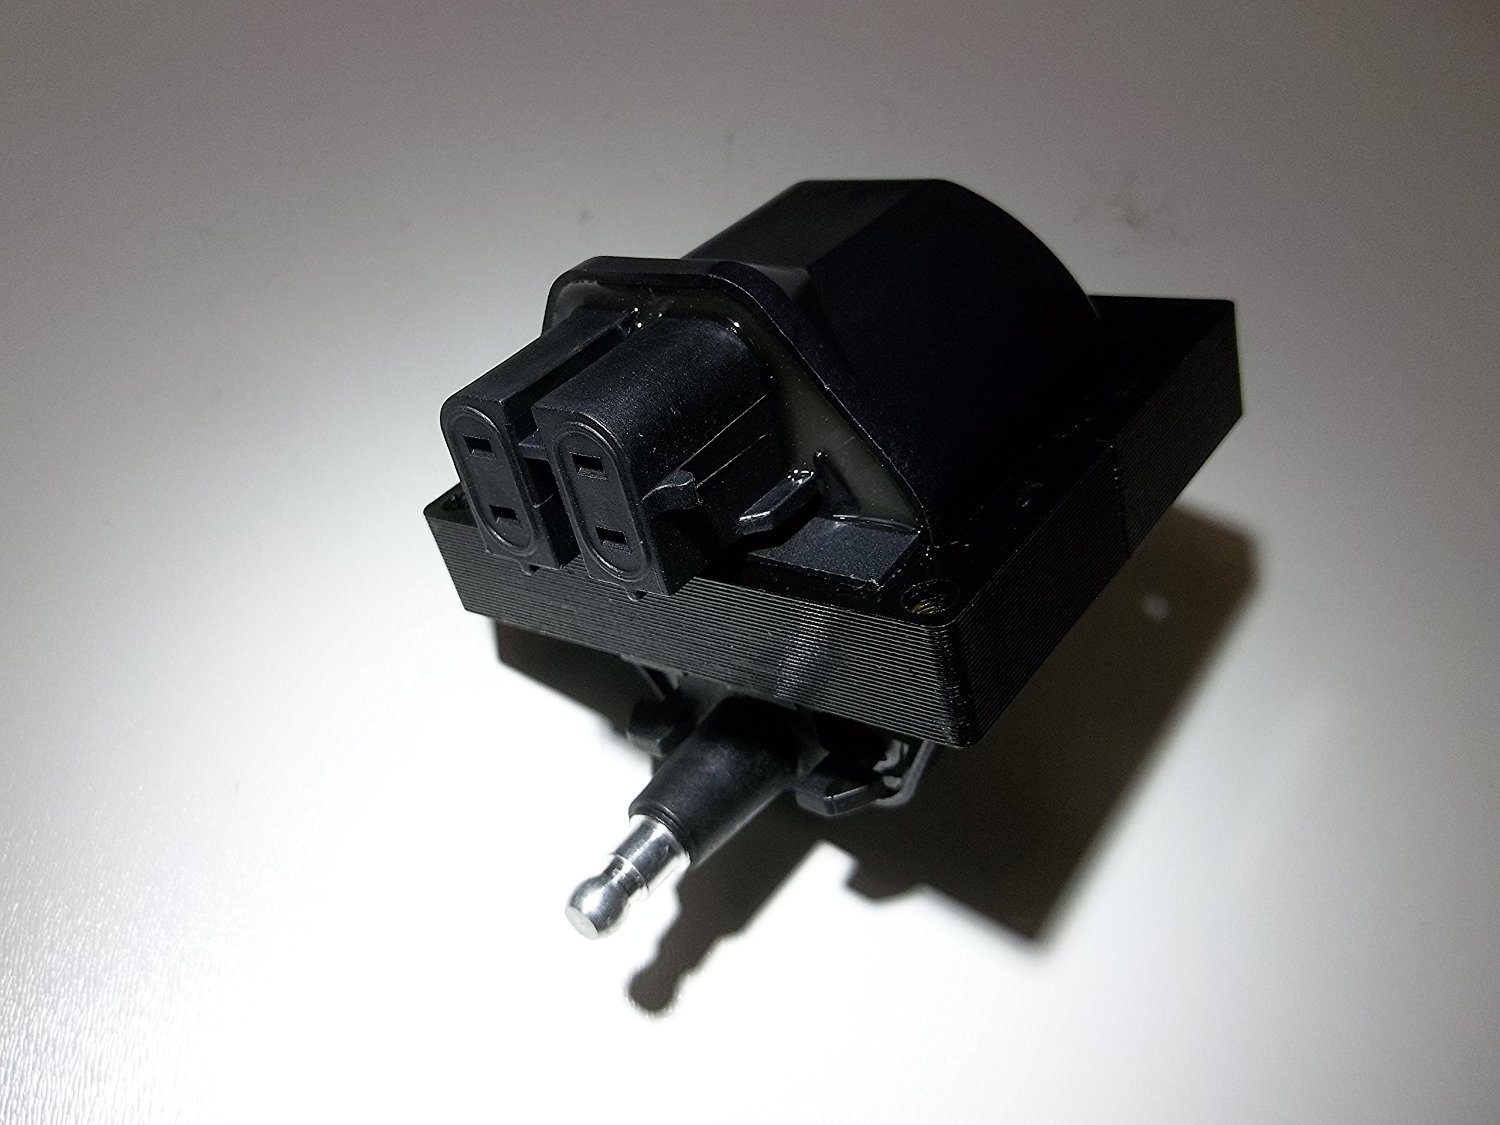 8.2 3854002 3.0 350 5.7 5.0 Replaces 3854002-7 4.3 7.4 RPS Ignition Coil for Mercruiser or Volvo Penta 898253T27,817378T